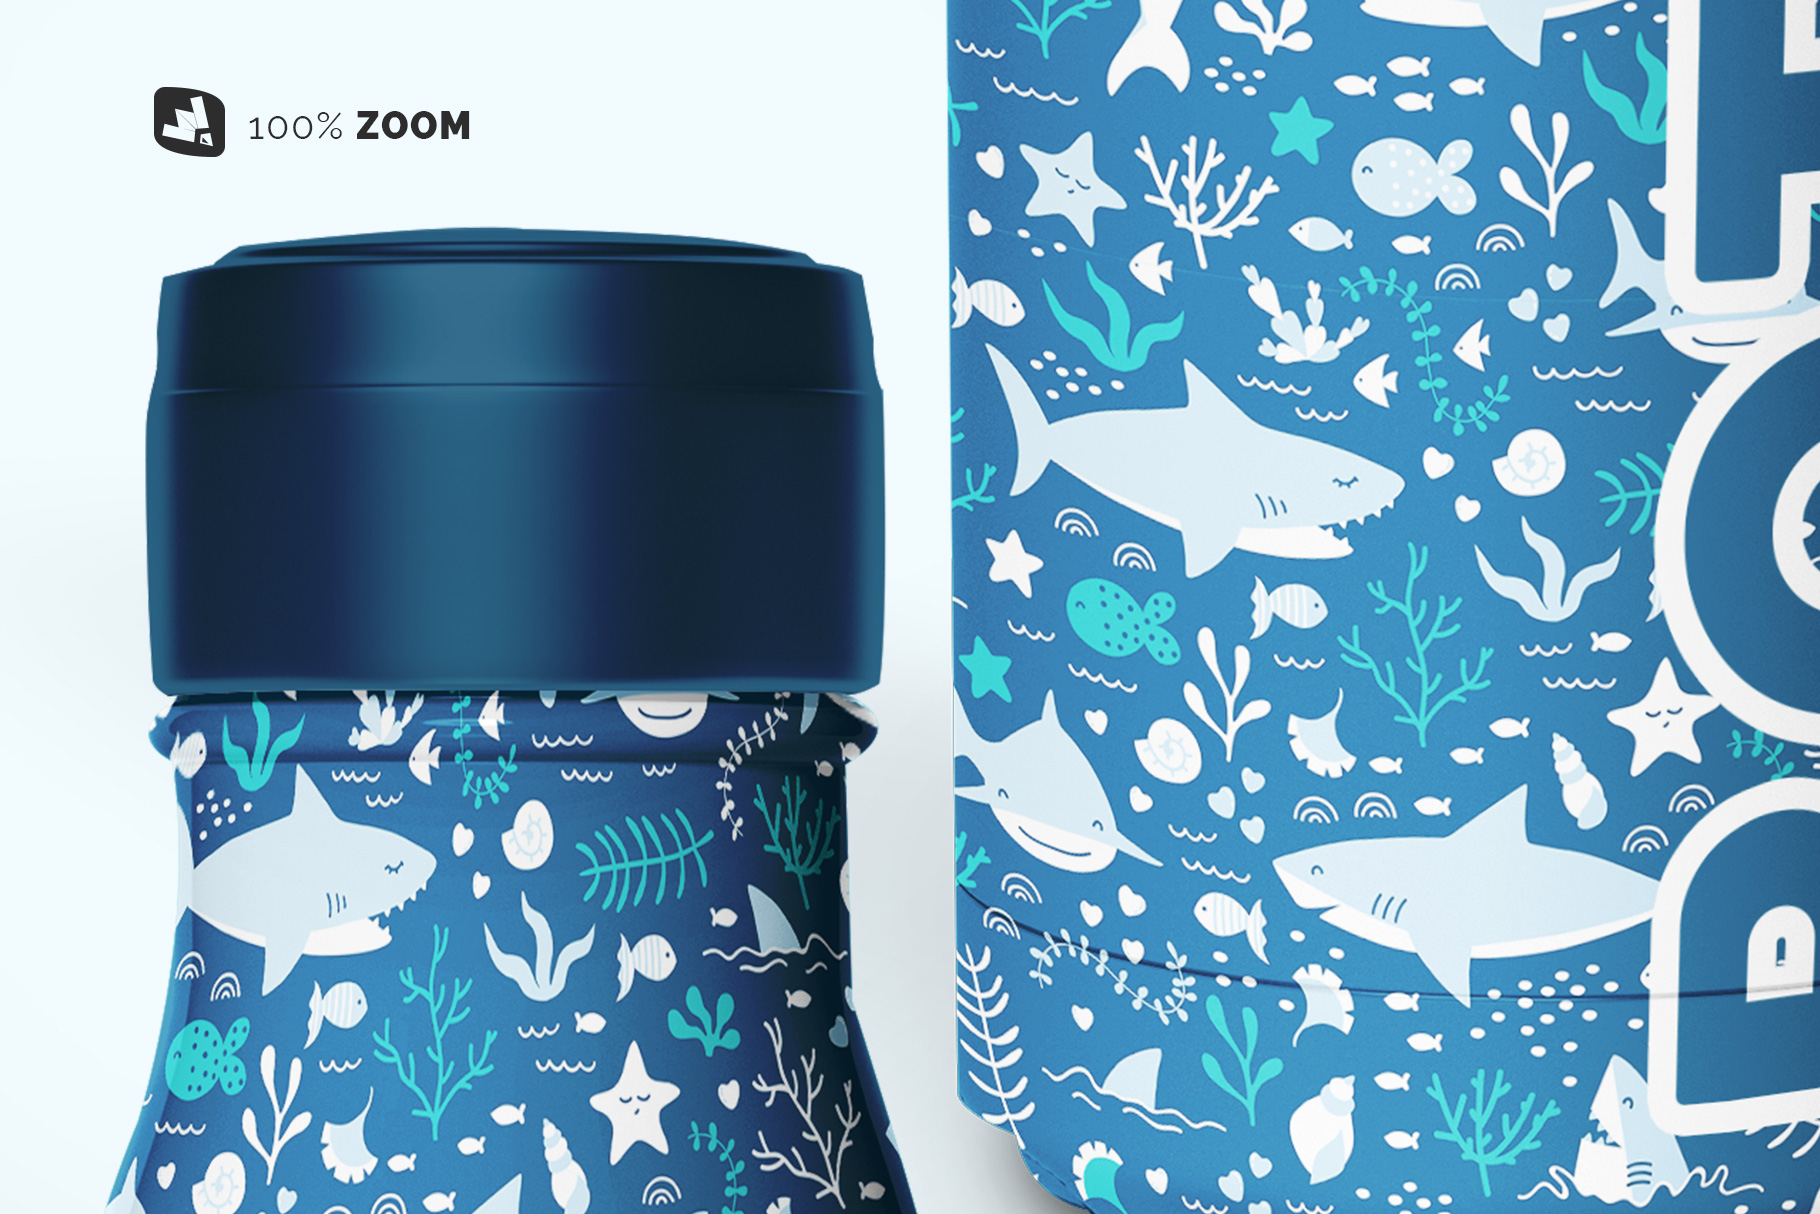 zoomed in image of the steel thermos bottle mockup